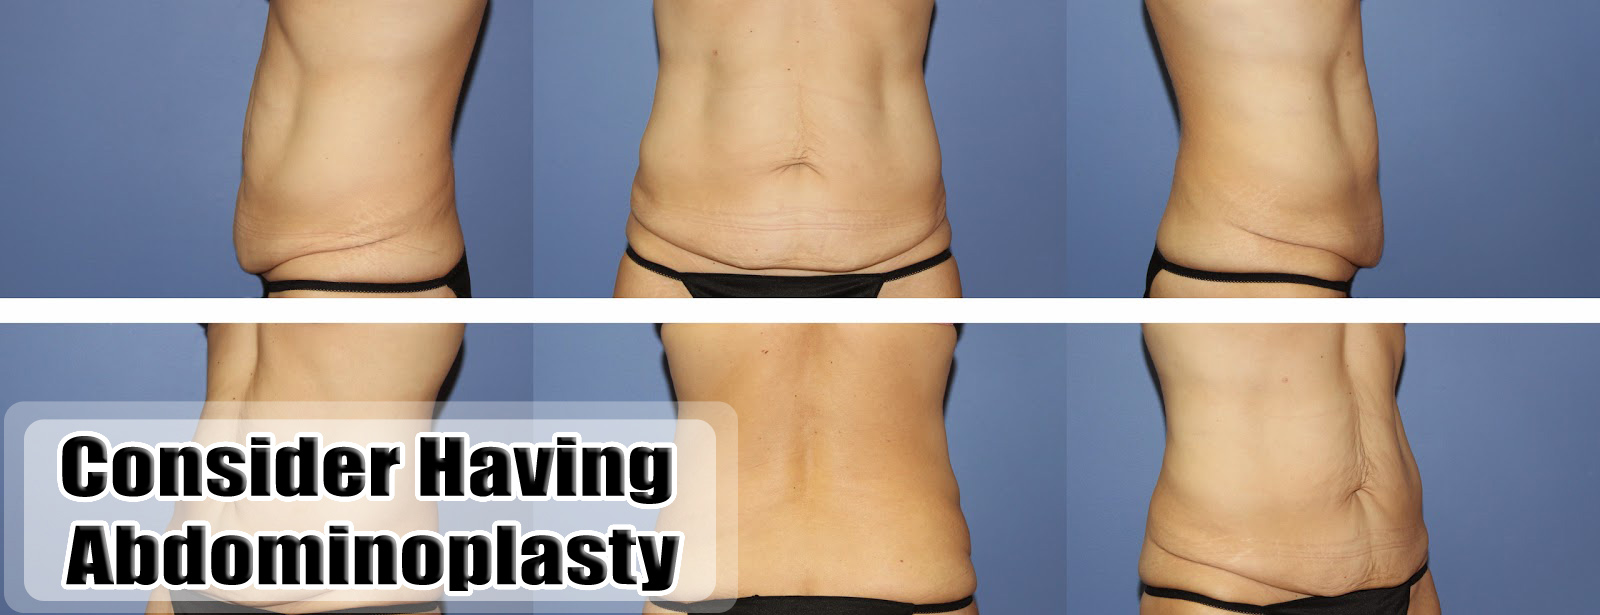 Why You Need to Consider Having Abdominoplasty